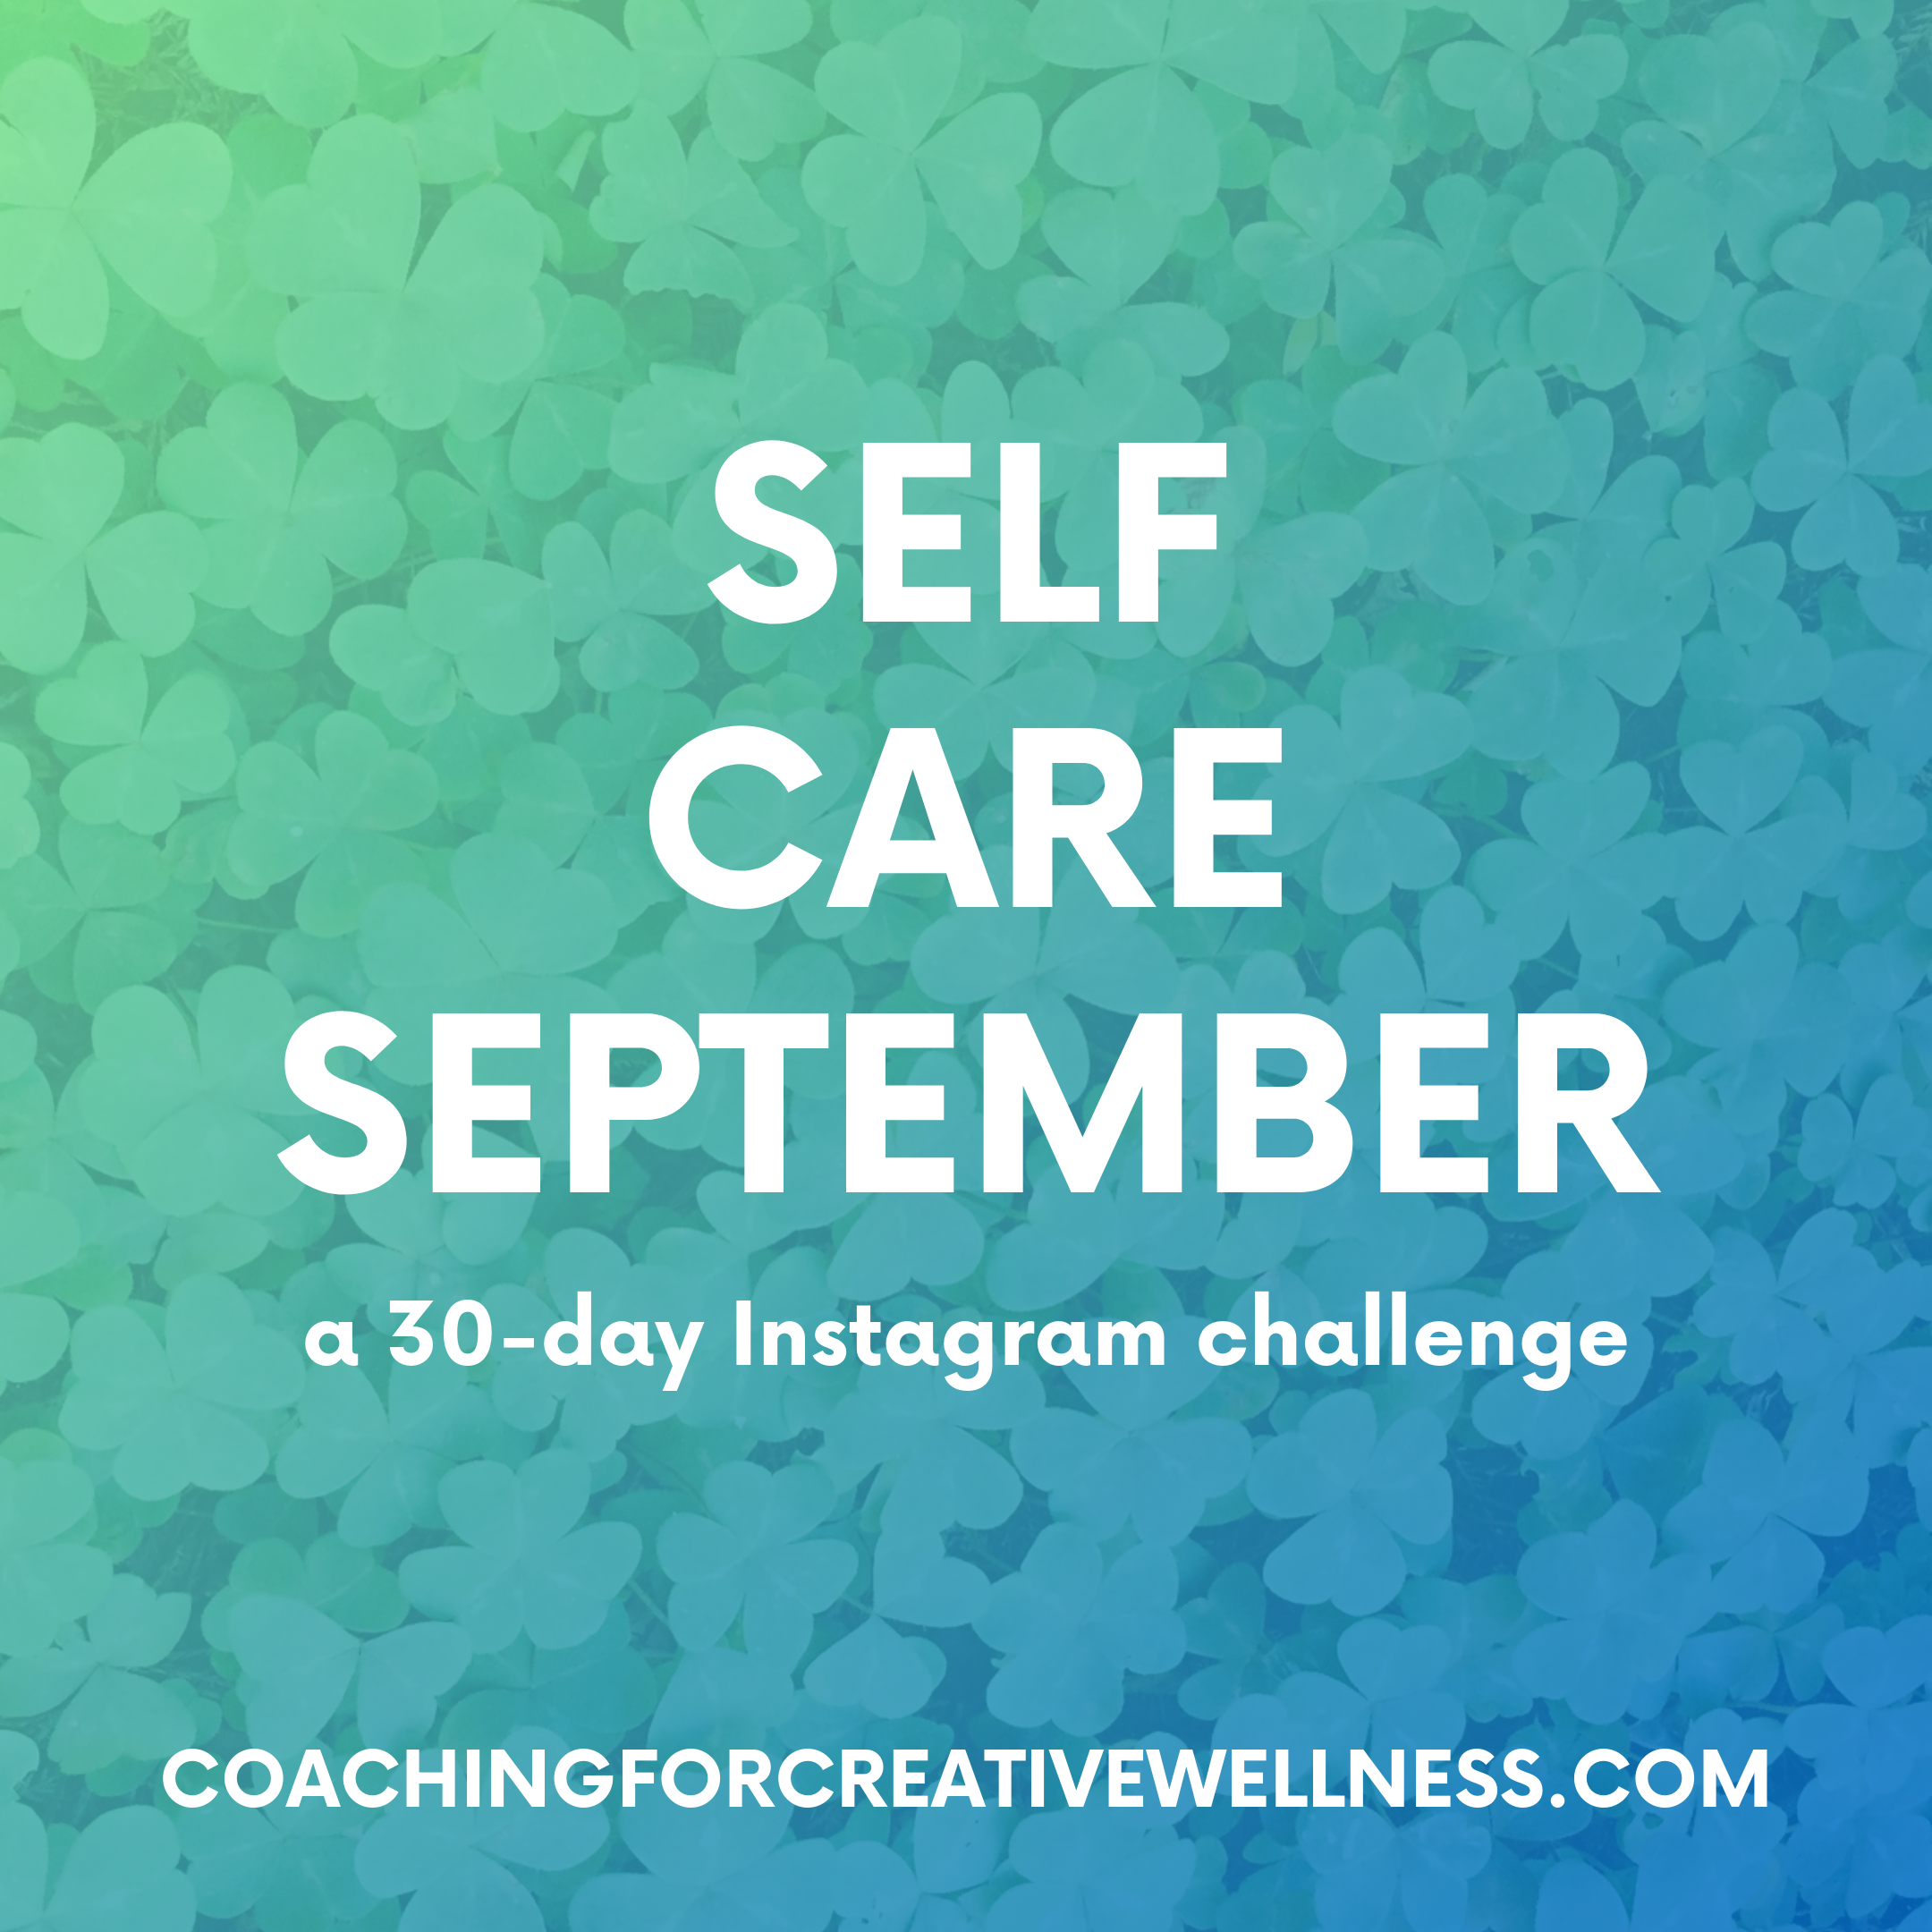 Coaching-for-Creative-Wellness-Self-Care-September-teaser.png